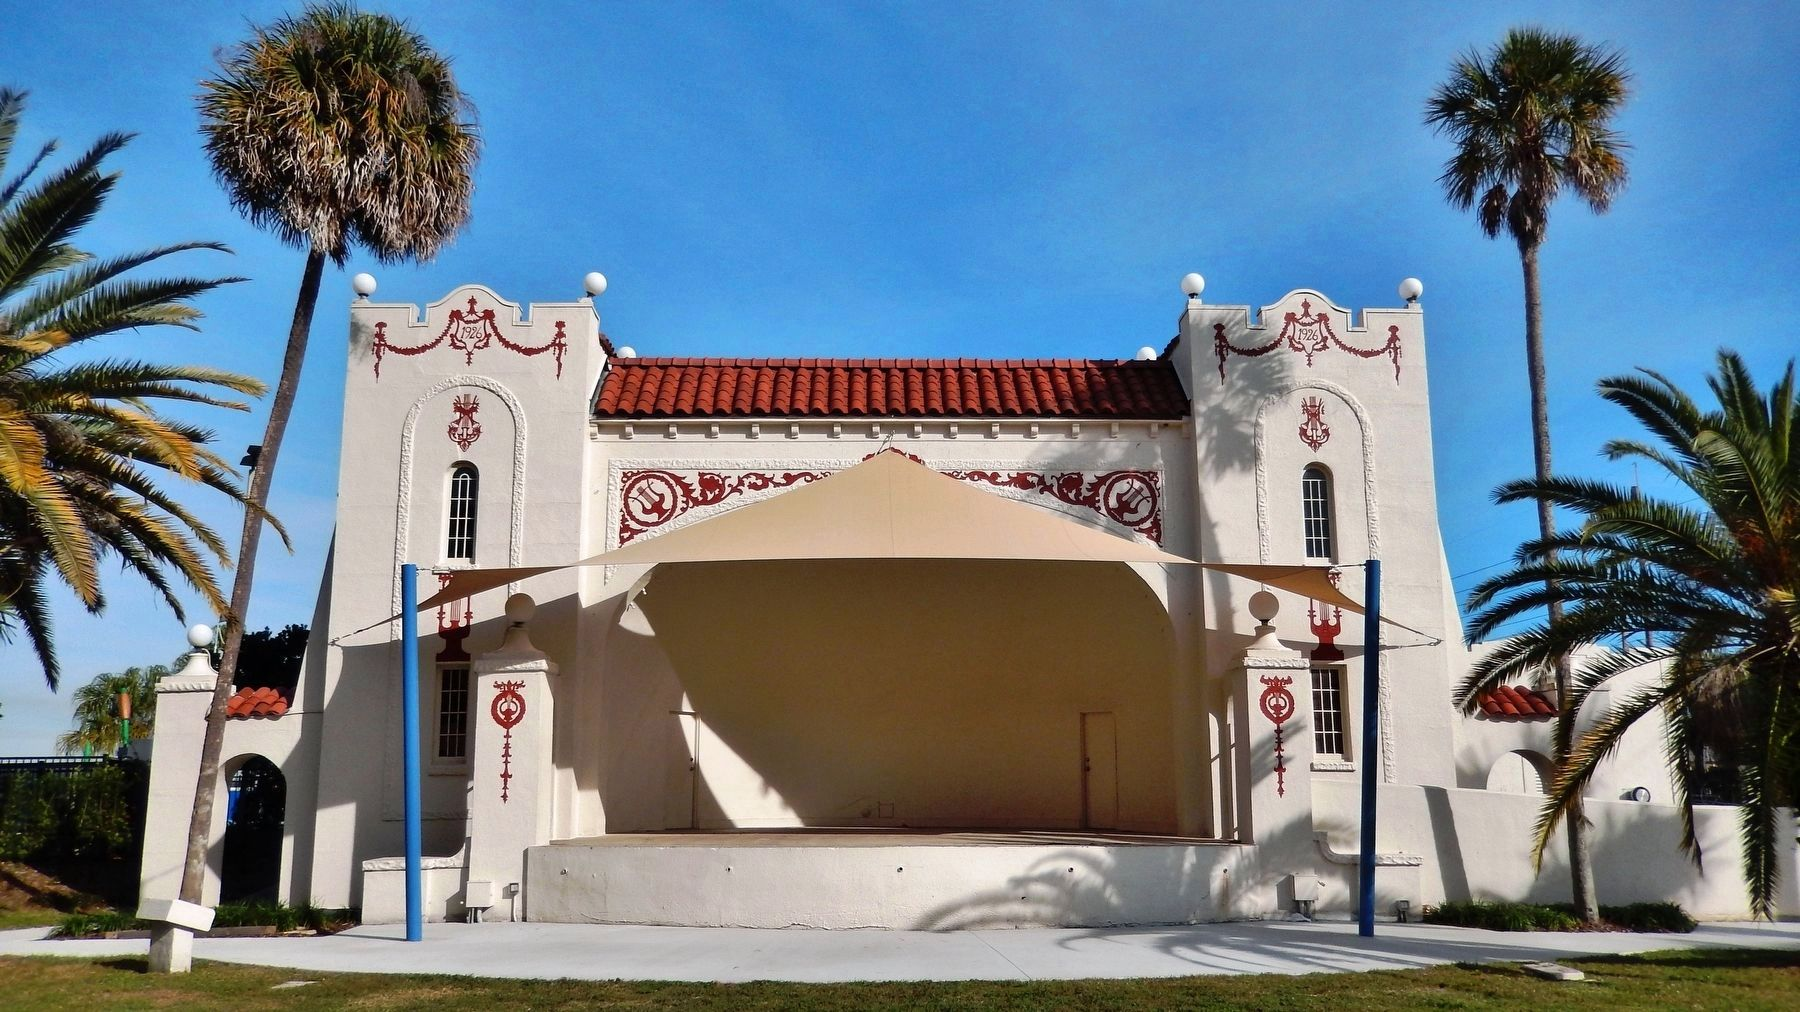 Alice B. McClelland Memorial Band Shell image. Click for full size.